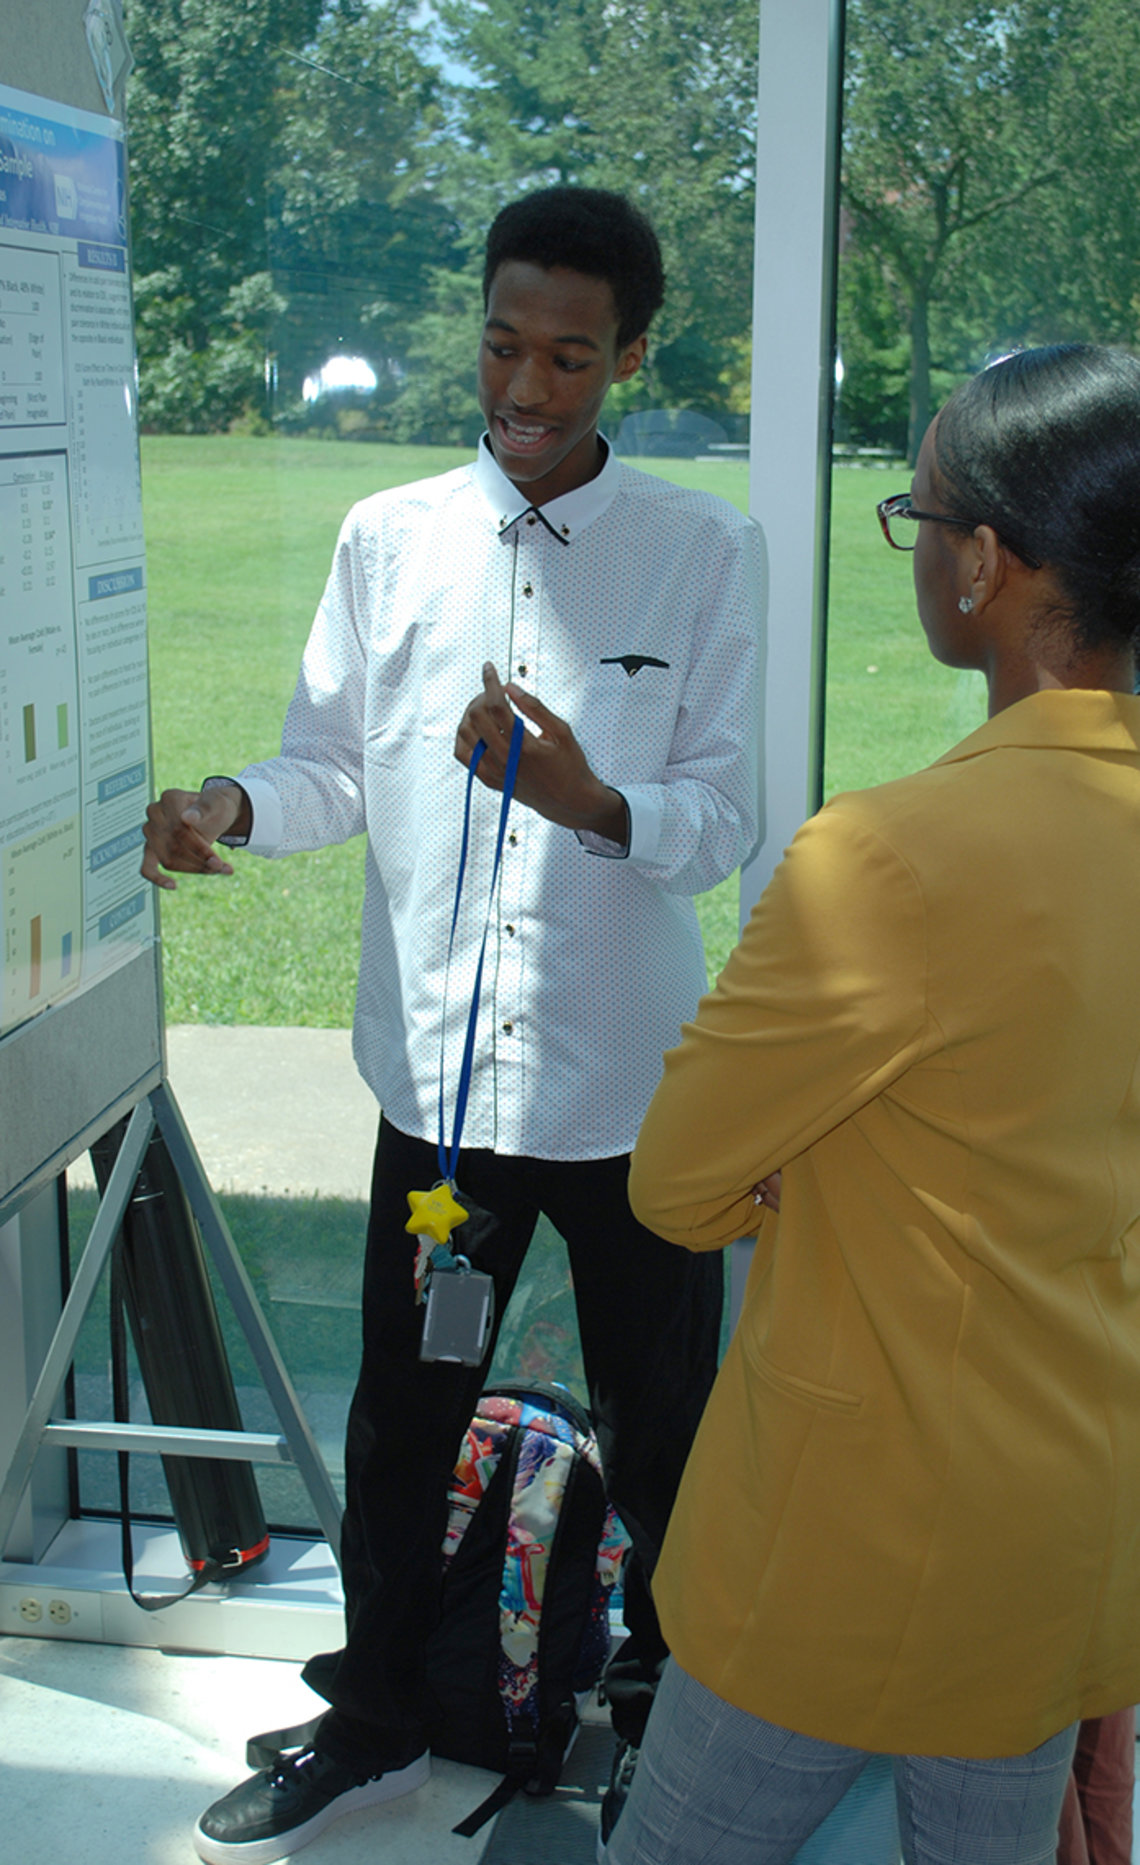 Students look at science poster